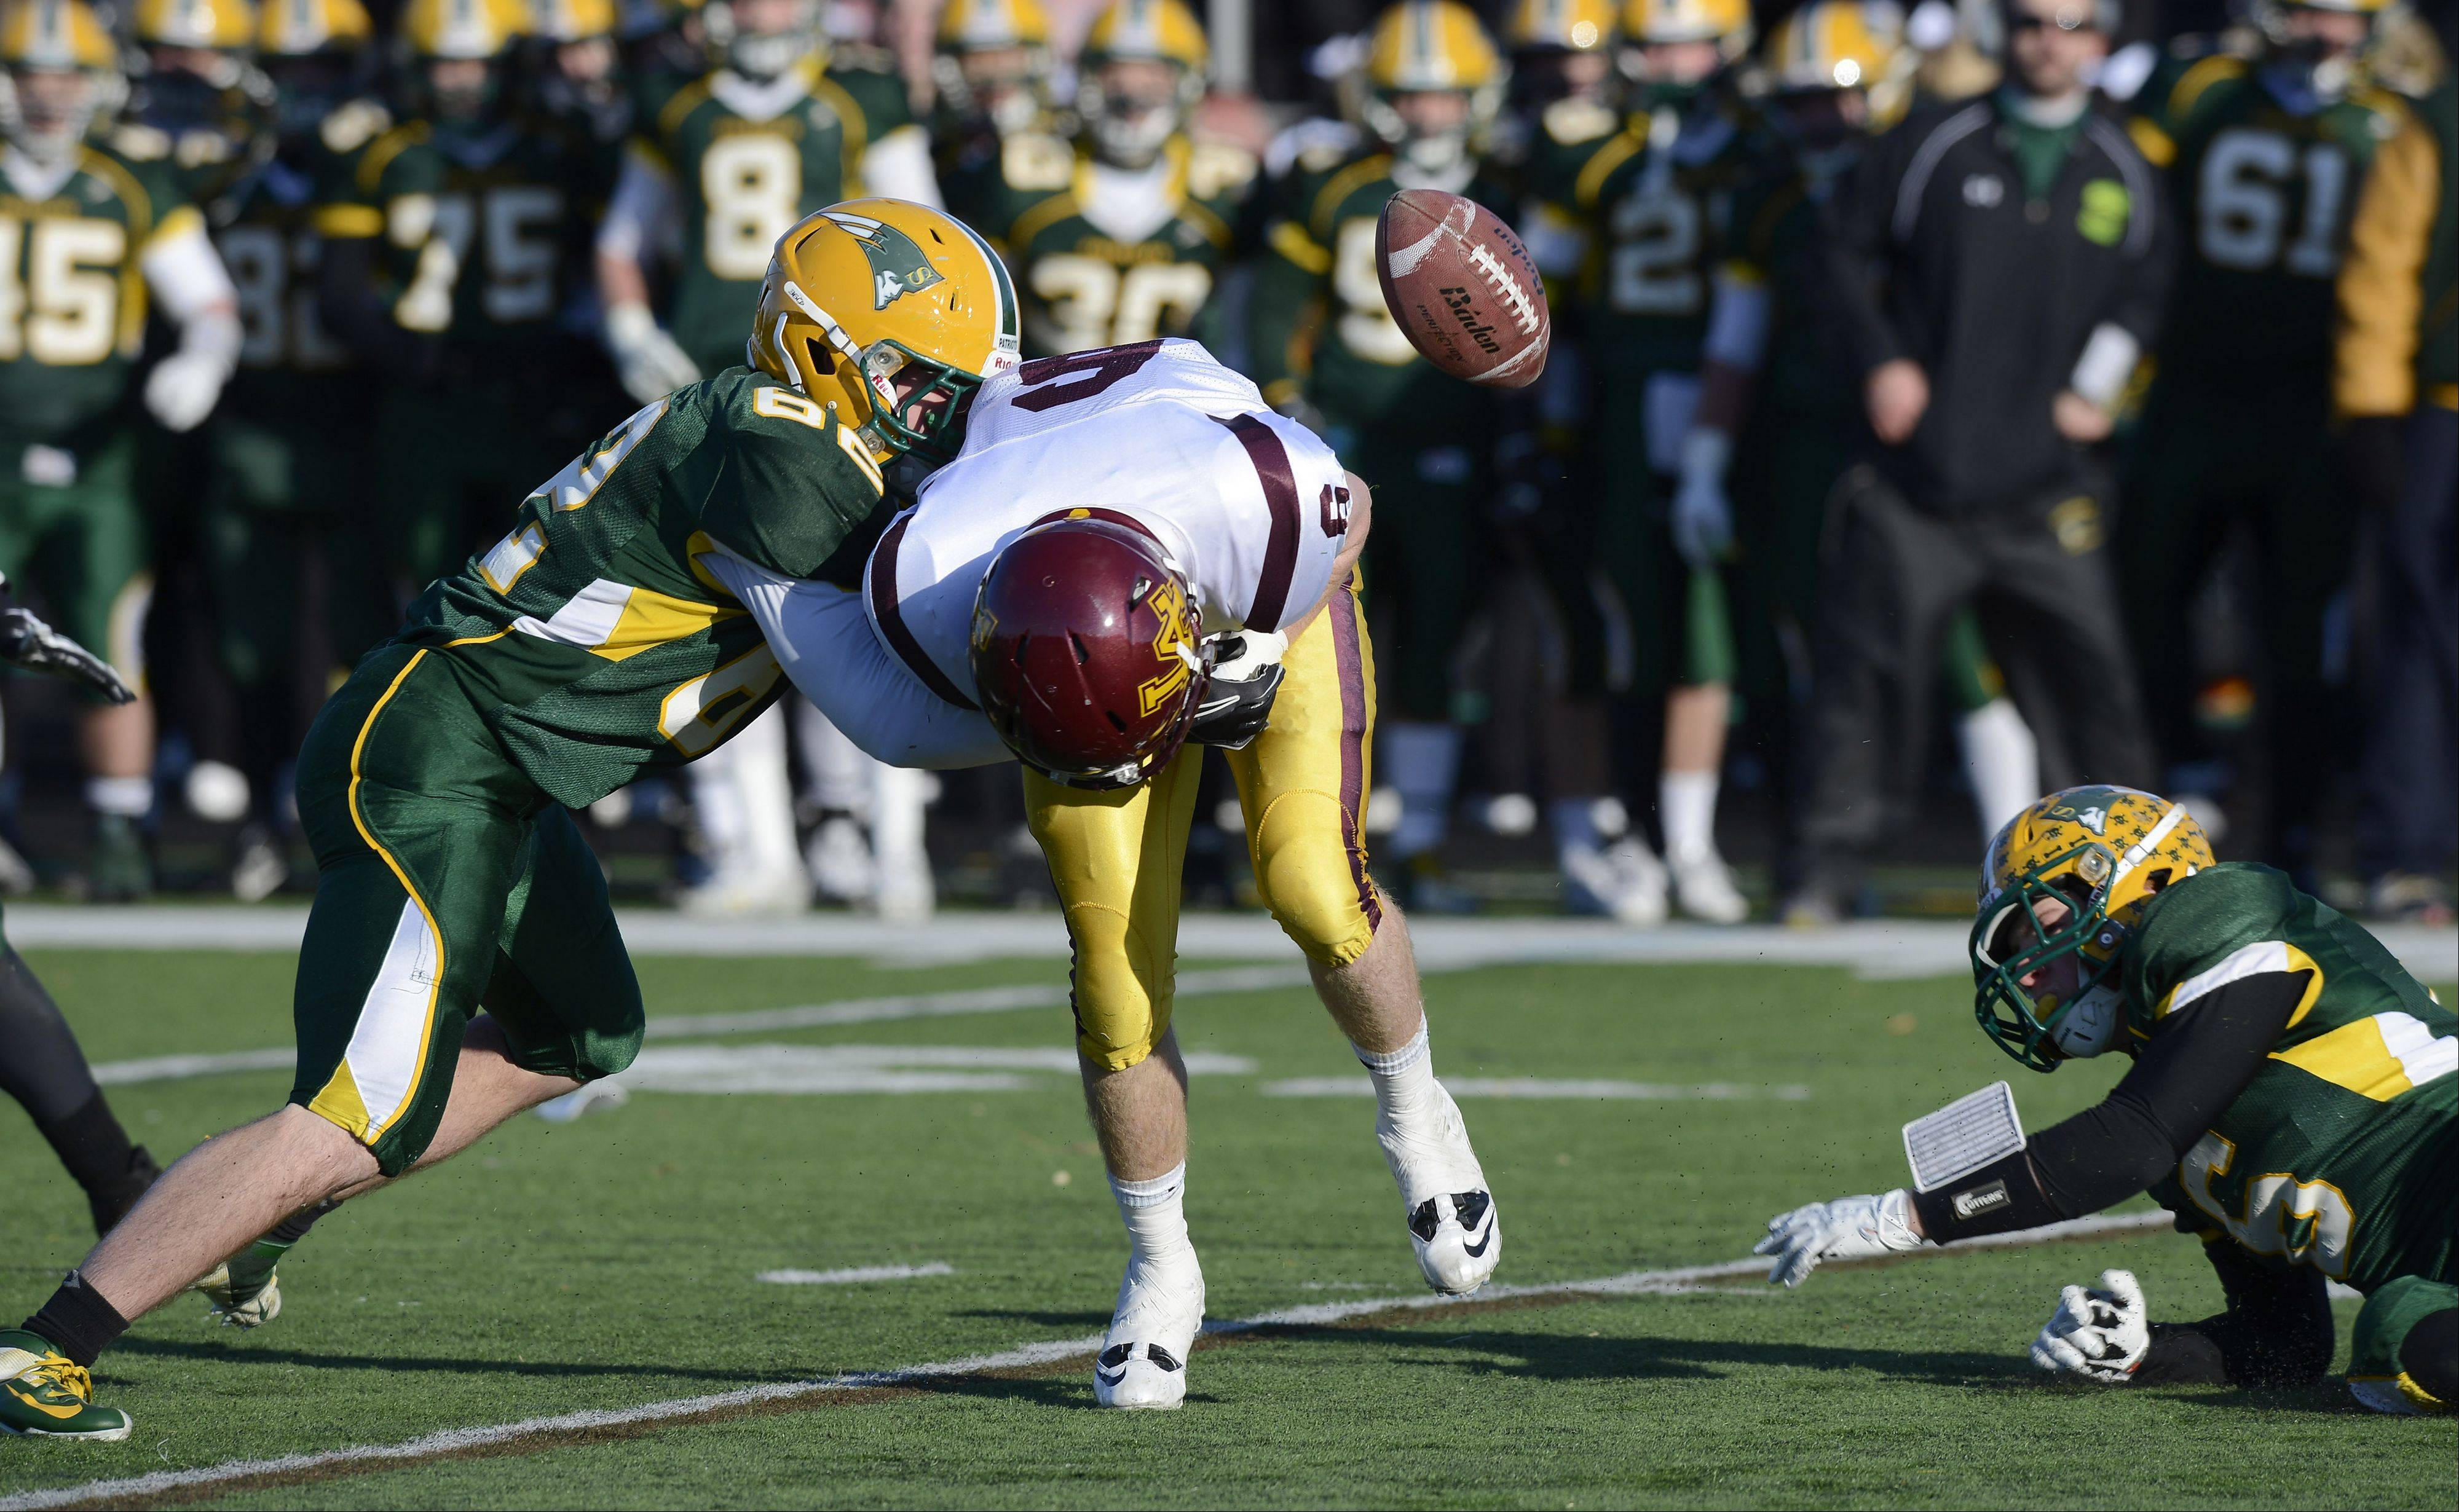 Stevenson's Tyler Harrington, left, and Itai Gerchikov force a fumble by Loyola's Fran O'Malley during Saturday's class 8A semifinal in Lincolnshire.